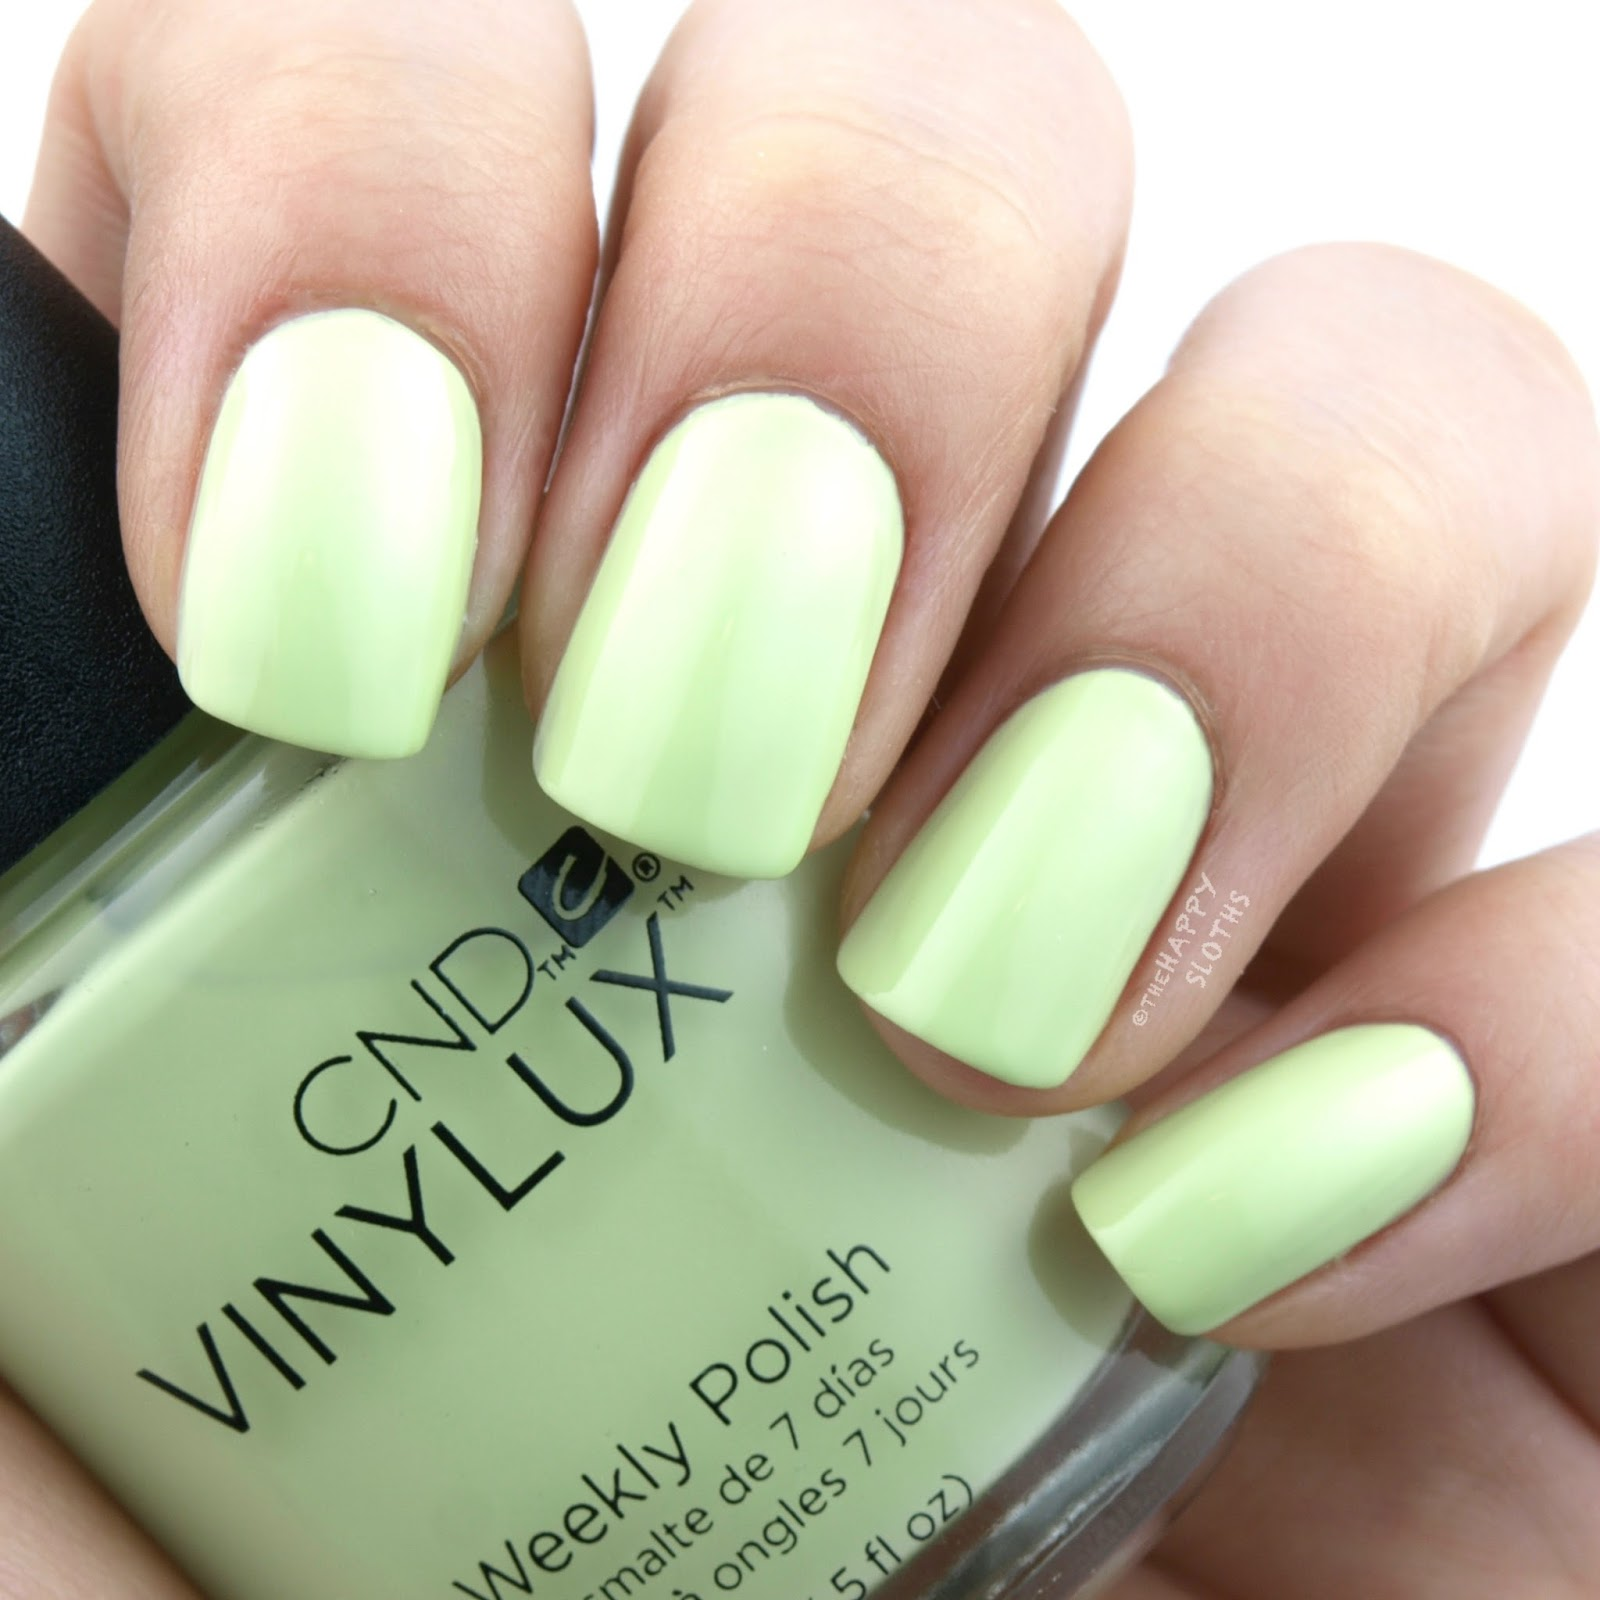 CND Summer 2017 Rhythm & Heat Sugar Cane: Review and Swatches